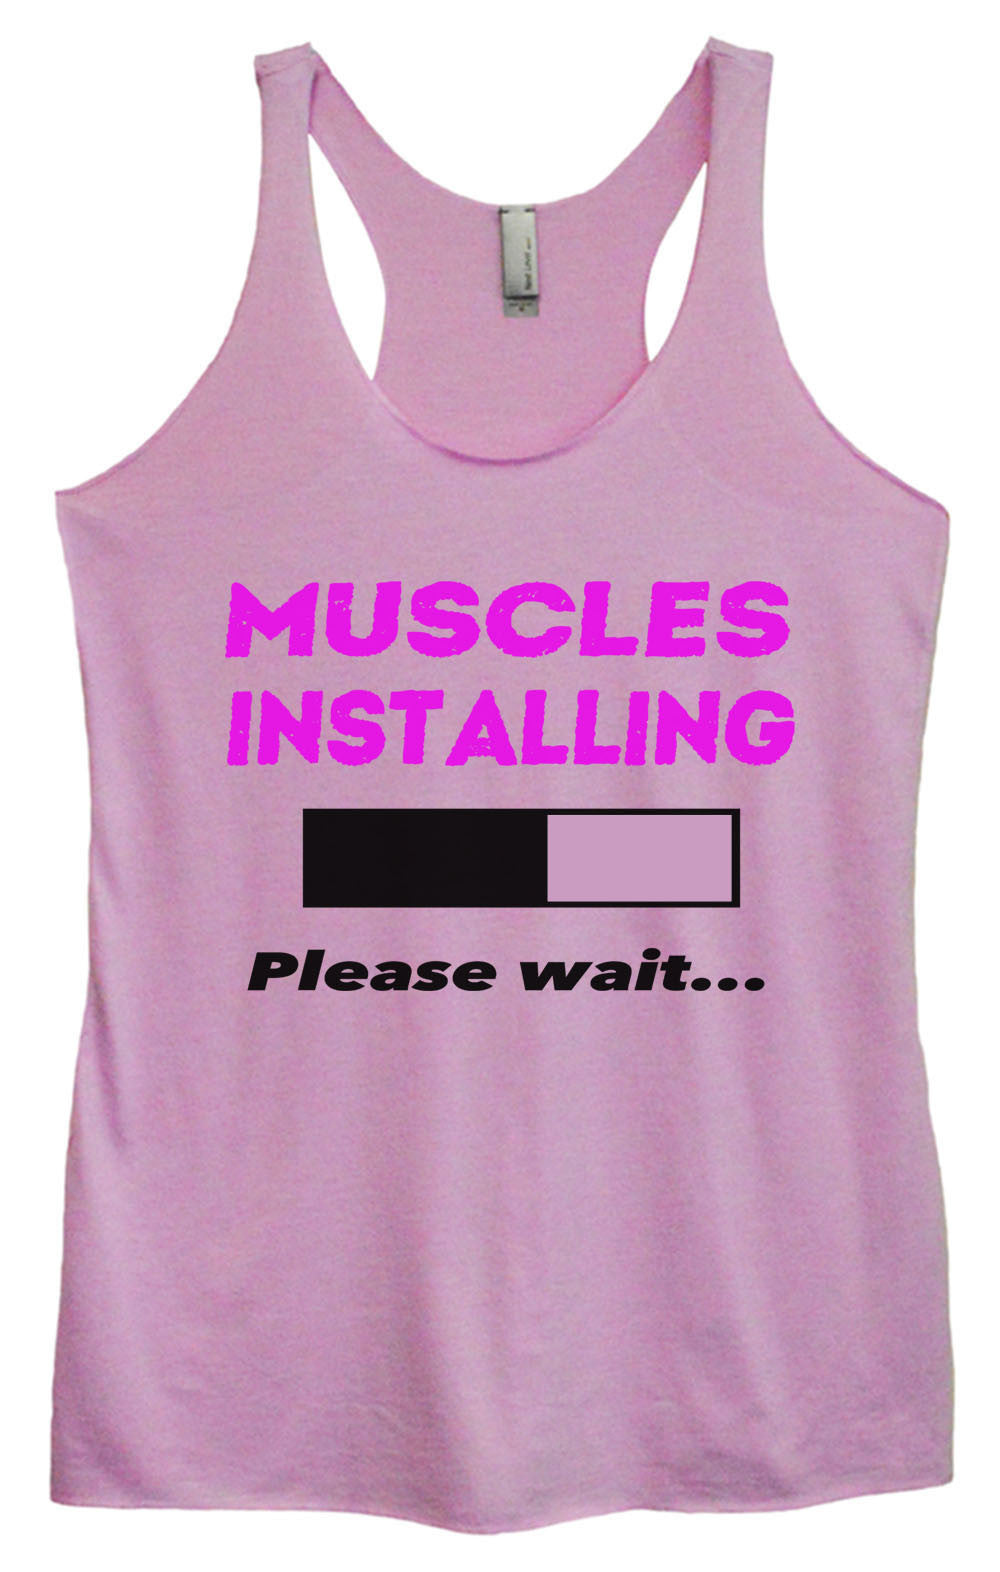 Womens Fashion Triblend Tank Top - Muscles Installing Please Wait... - Tri-762 - Funny Shirts Tank Tops Burnouts and Triblends  - 3